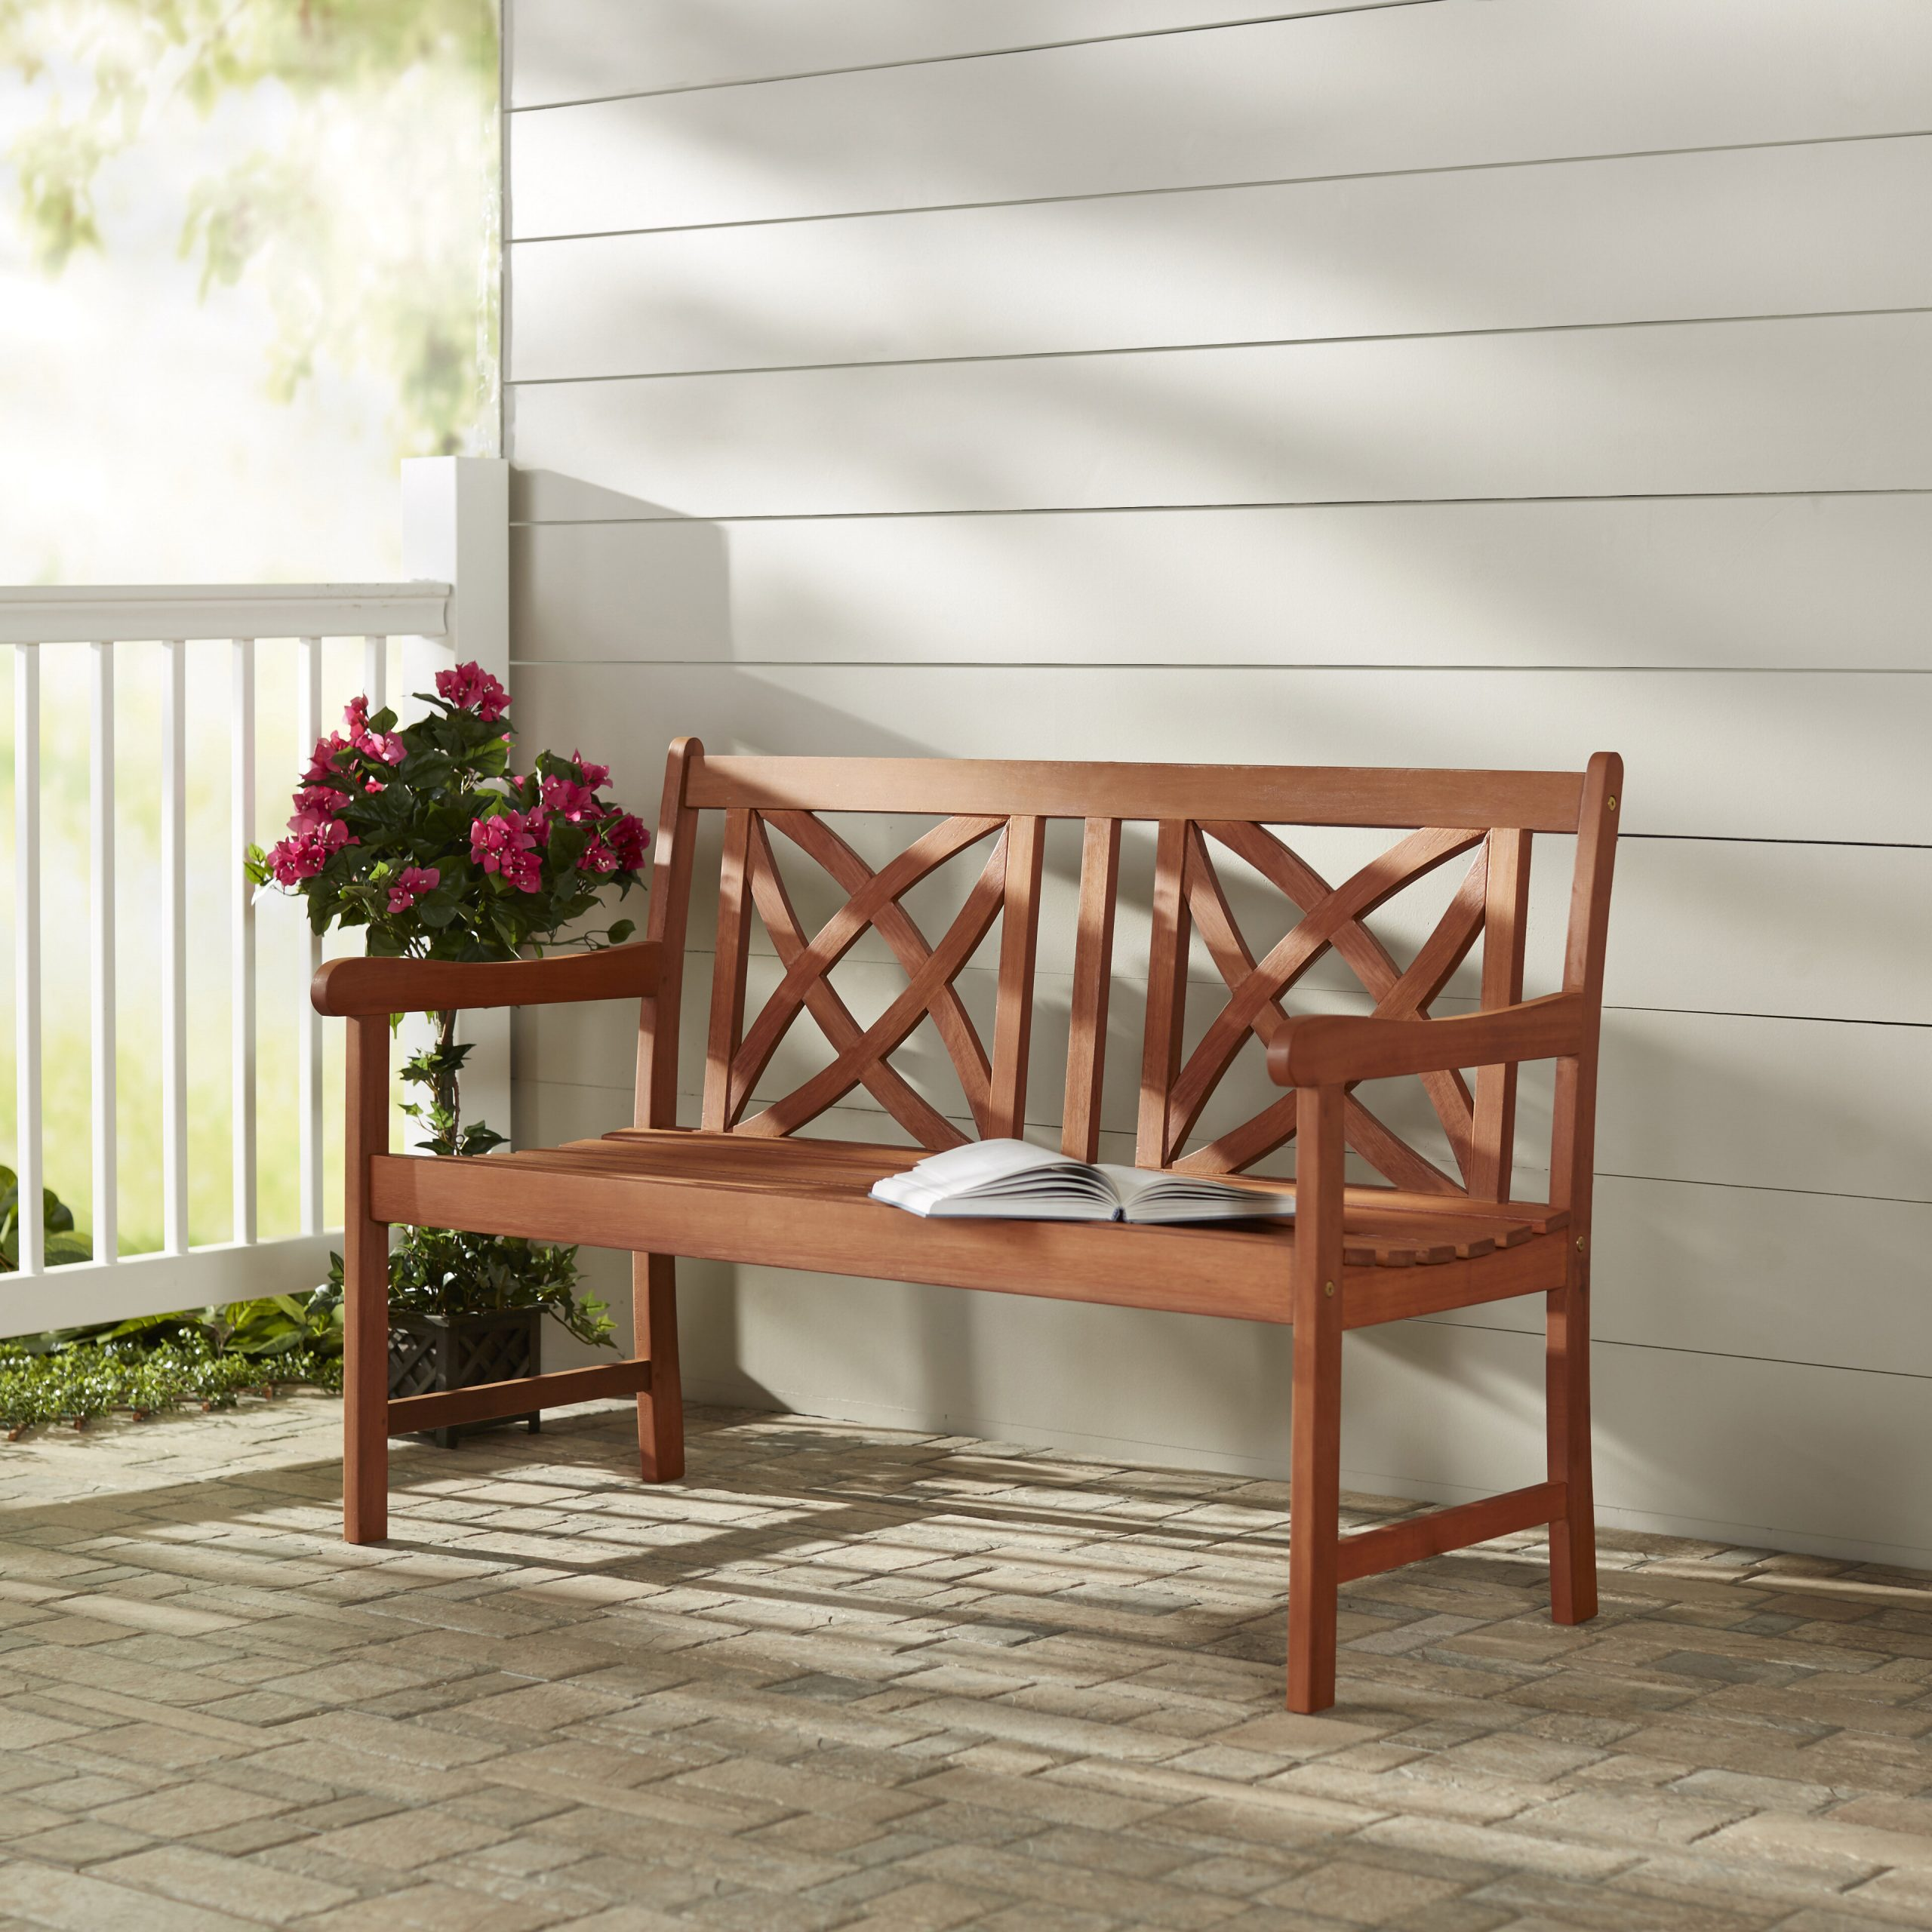 Traditional Outdoor Benches You'Ll Love In 2020 | Wayfair In Brecken Teak Garden Benches (View 10 of 25)